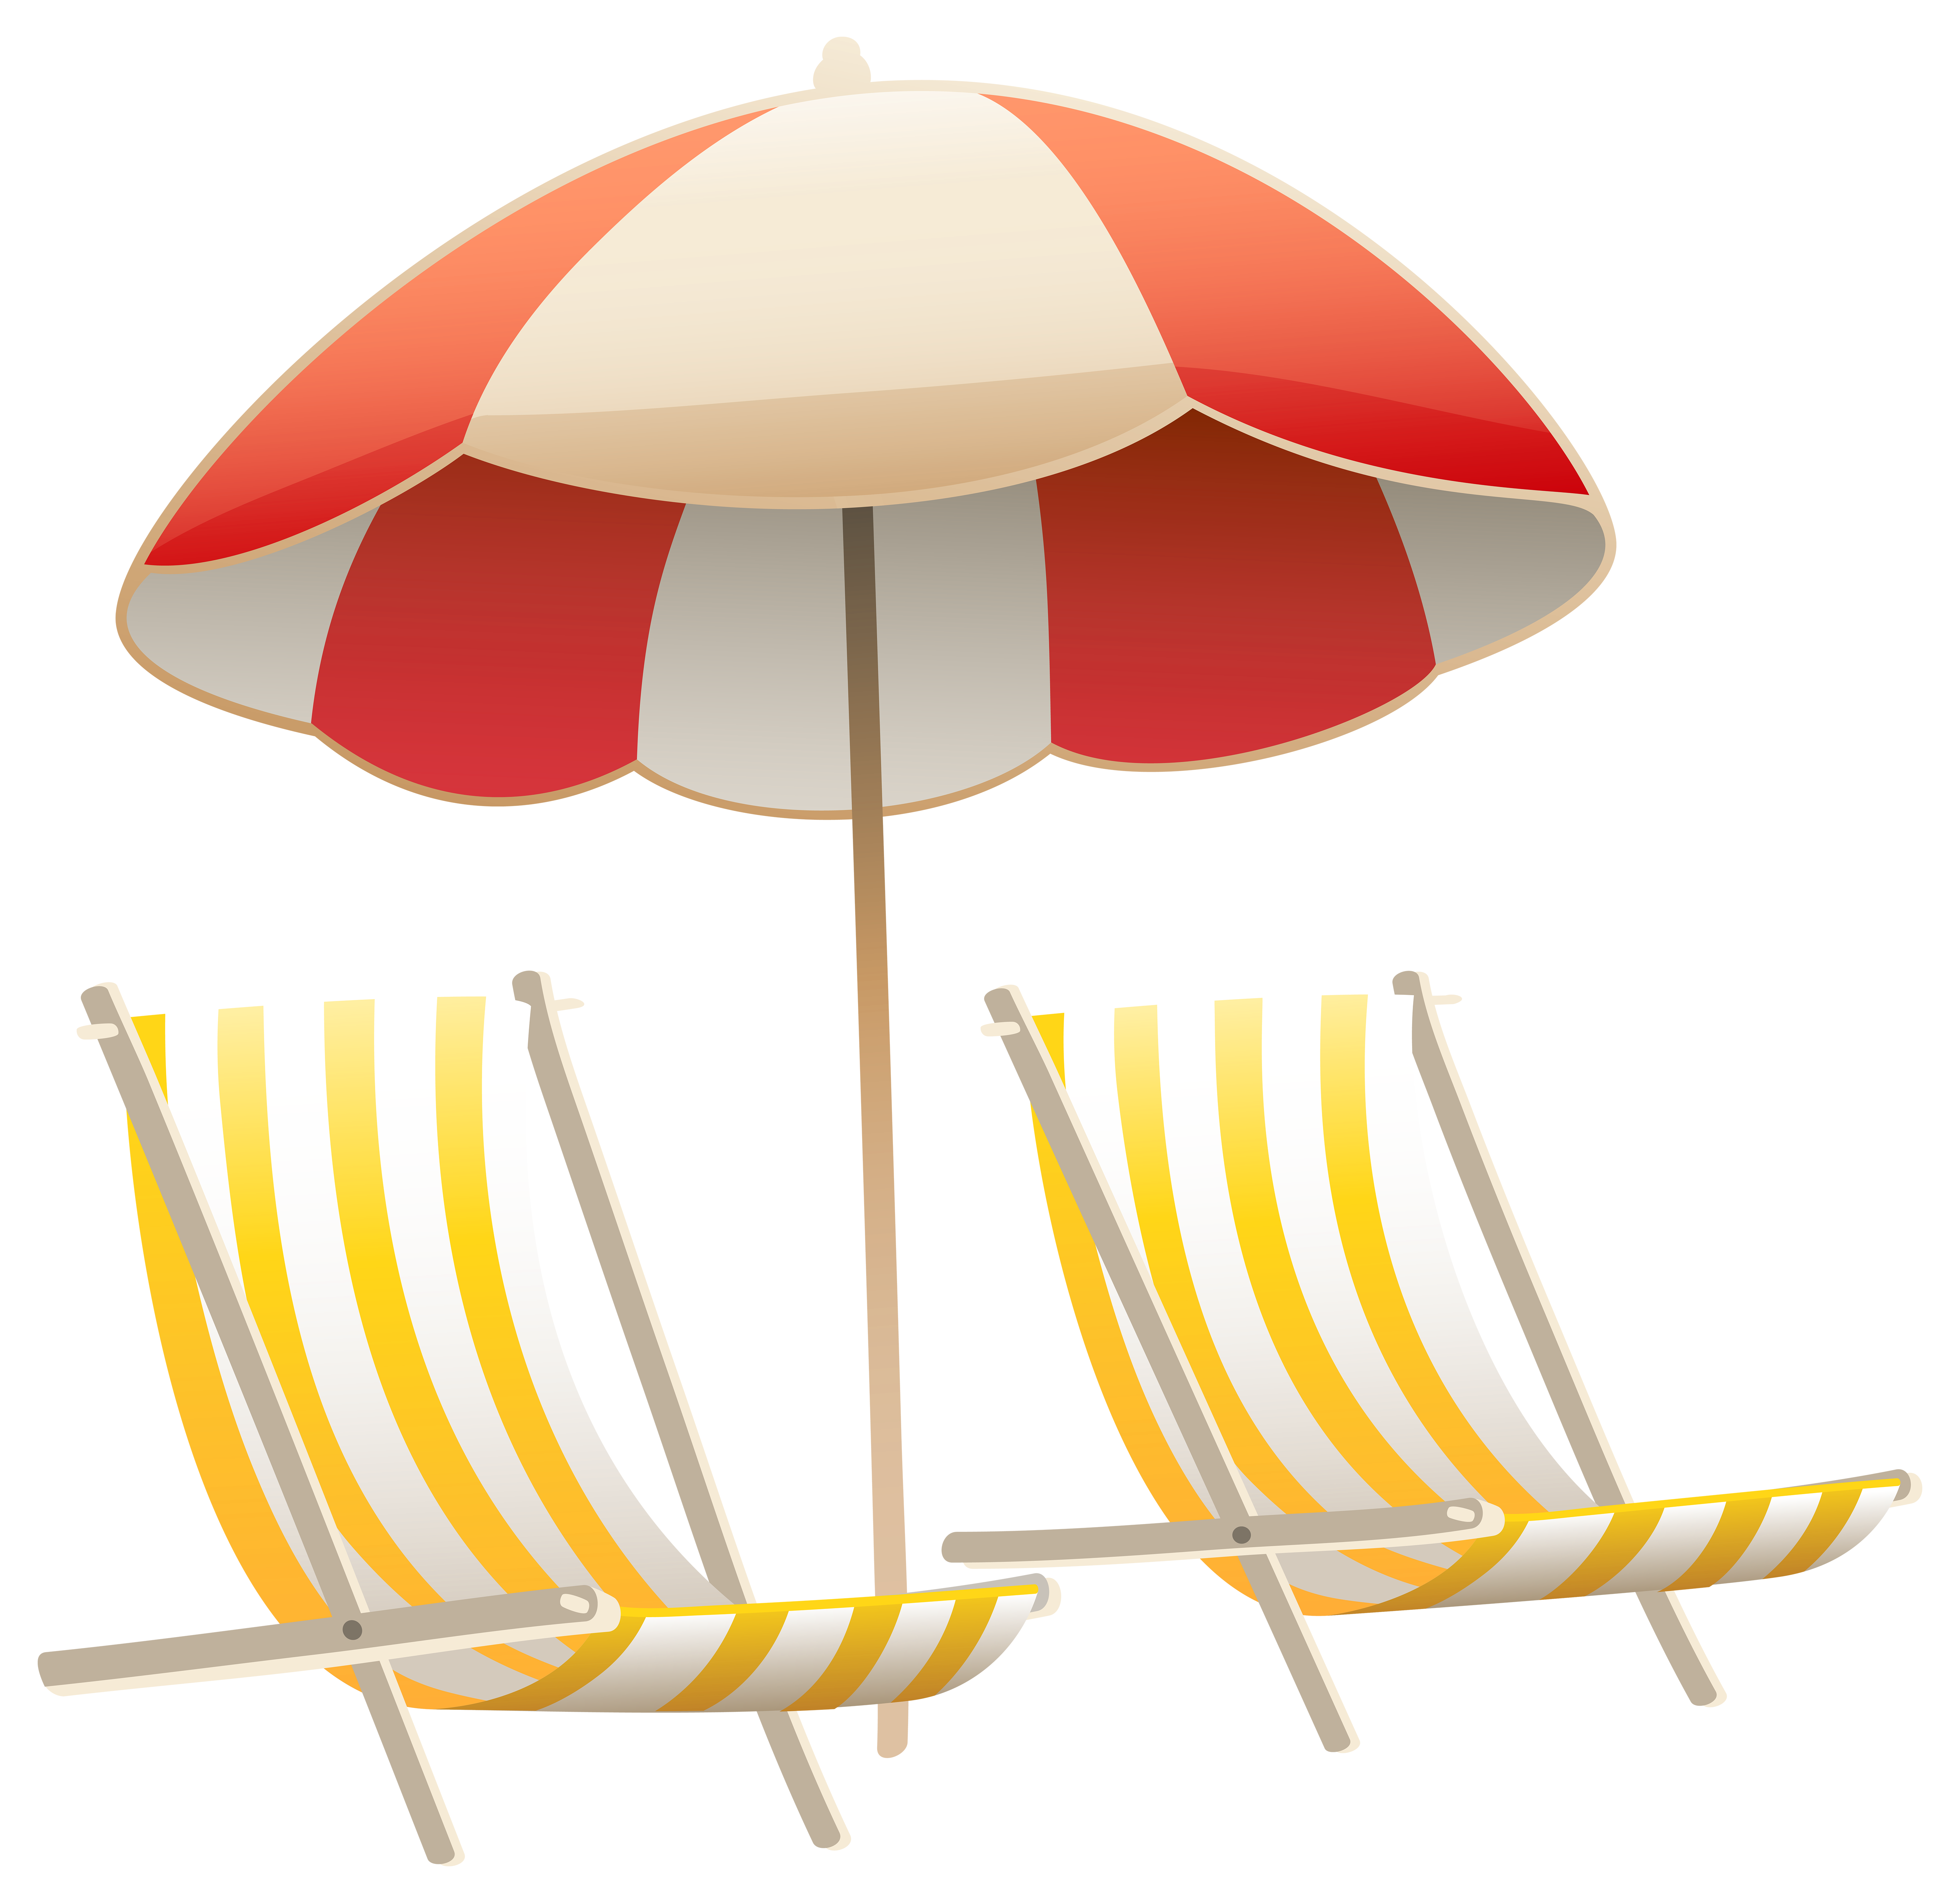 Beach clip art png. Umbrella and chairs clipart